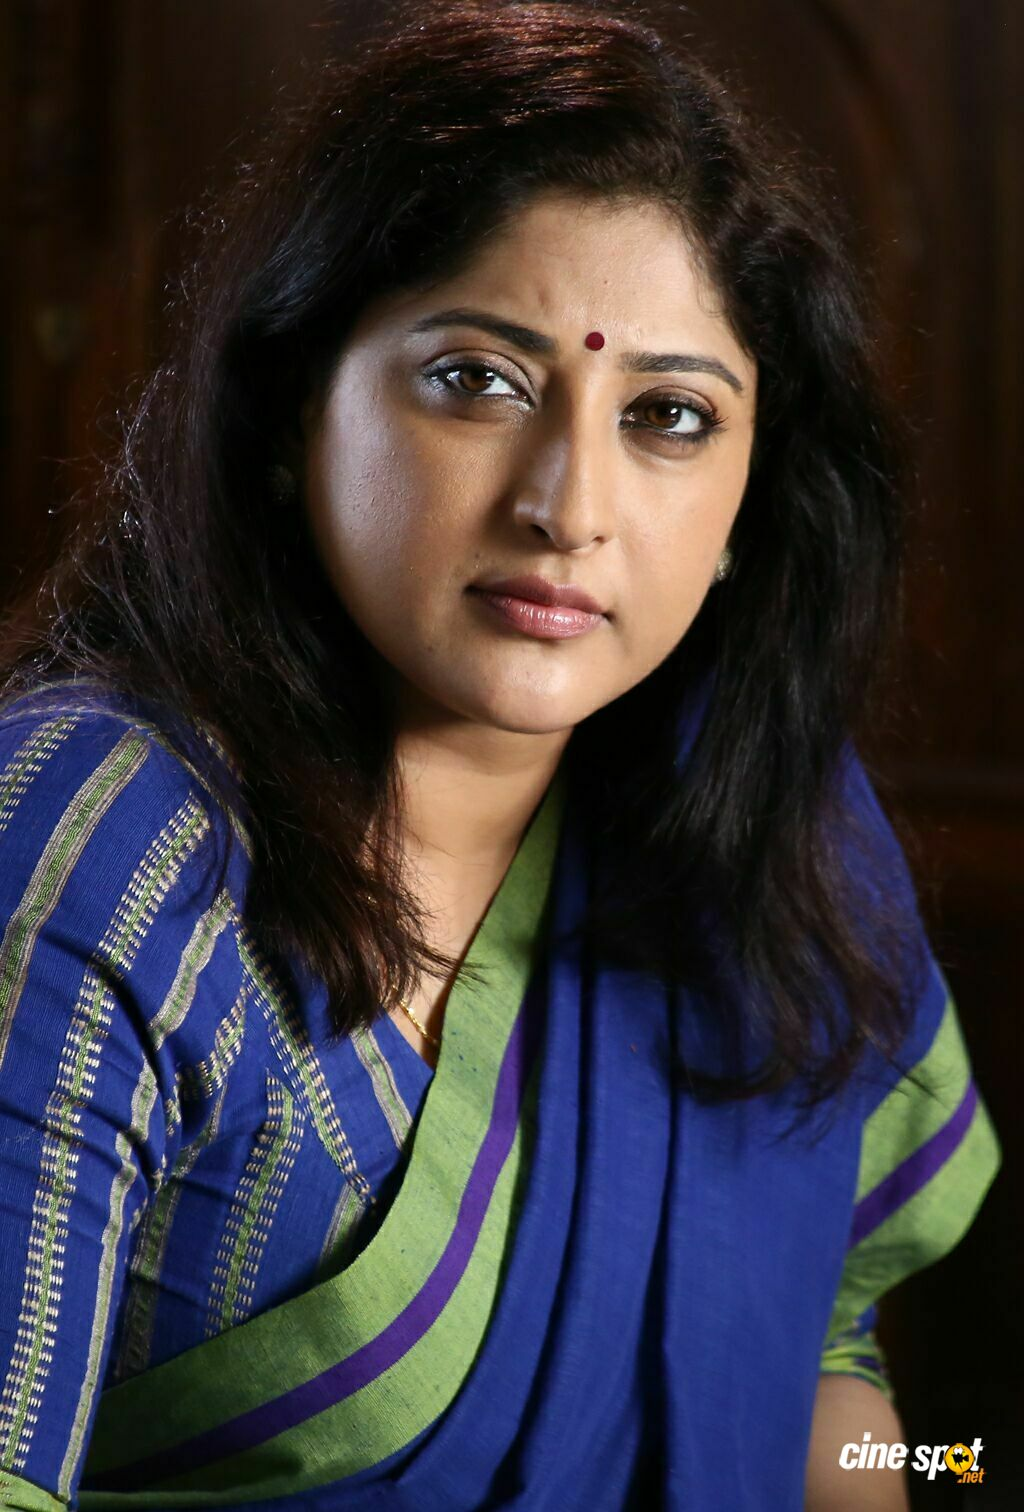 lakshmi gopalaswamy and vineeth filmlakshmi gopalaswamy marriage, lakshmi gopalaswamy dance, lakshmi gopalaswamy wiki, lakshmi gopalaswamy dance school, lakshmi gopalaswamy kamboji, lakshmi gopalaswamy movie list, lakshmi gopalaswamy facebook, lakshmi gopalaswamy and vineeth film, lakshmi gopalaswamy caste, lakshmi gopalaswamy twitter, lakshmi gopalaswamy bio, lakshmi gopalaswamy profile, lakshmi gopalaswamy dance performance, lakshmi gopalaswamy date of birth, lakshmi gopalaswamy wedding, lakshmi gopalaswamy husband name, lakshmi gopalaswamy family, lakshmi gopalaswamy family photos, lakshmi gopalaswamy dance photos, lakshmi gopalaswamy interview